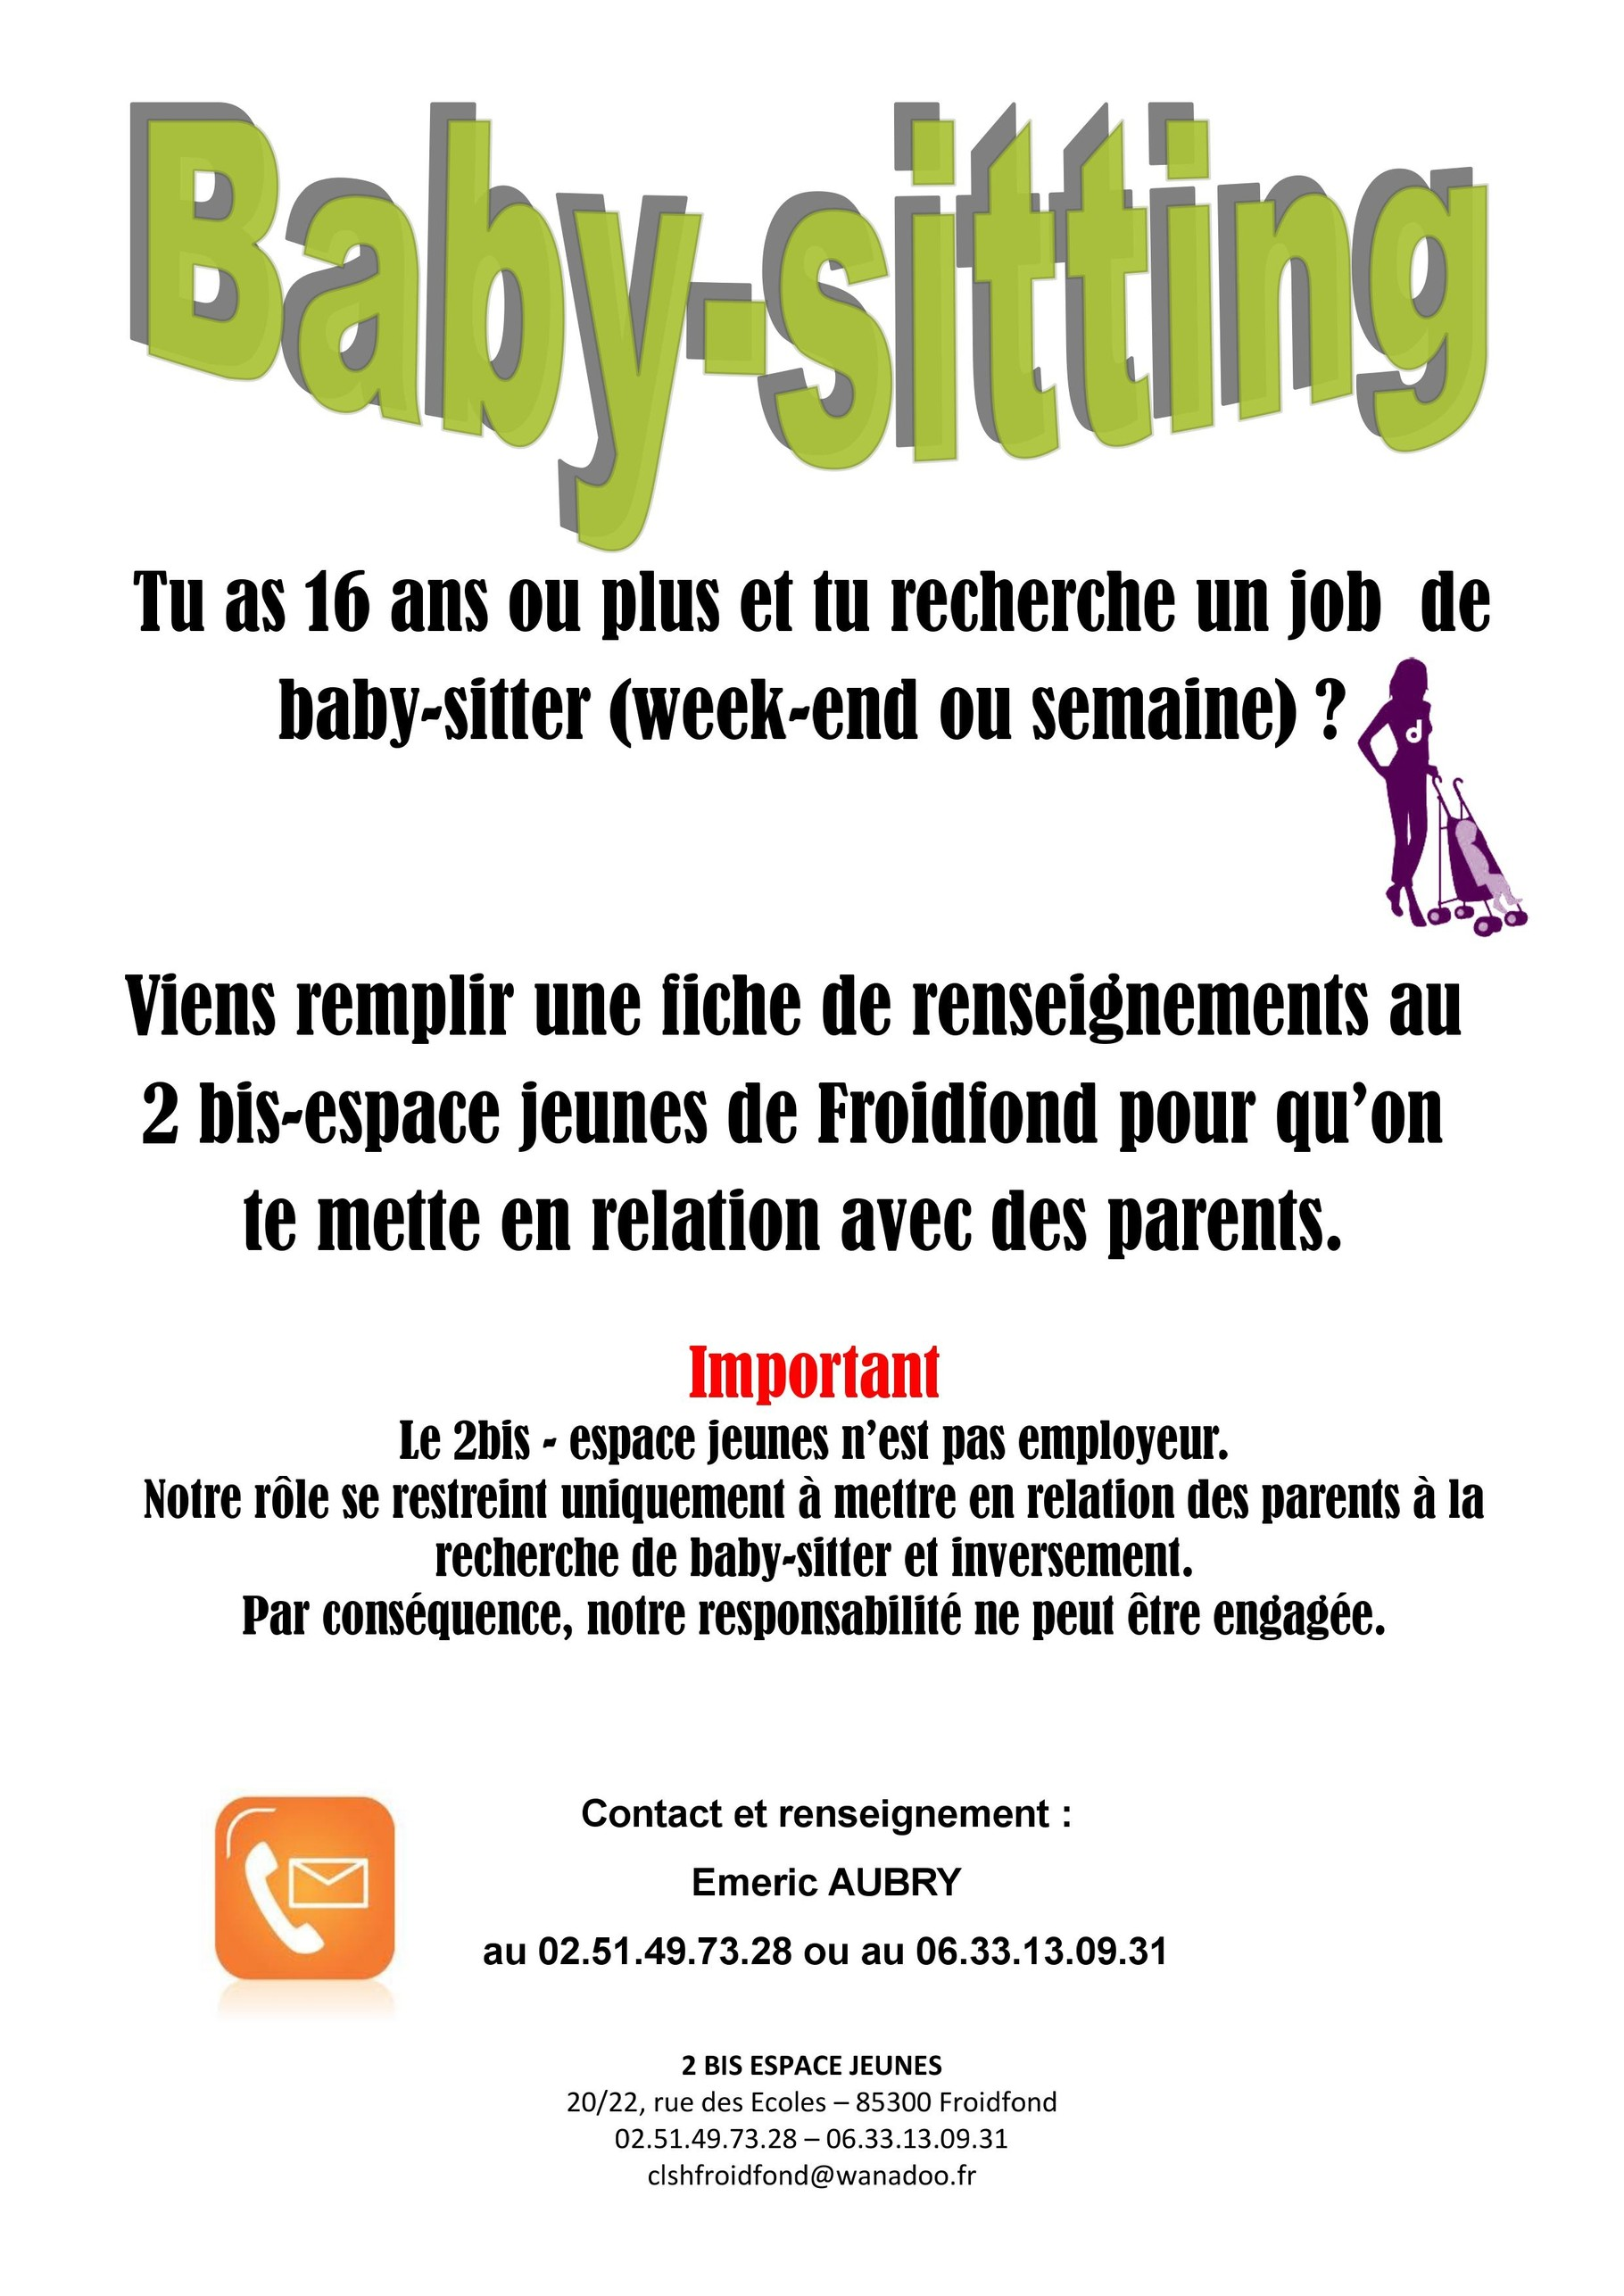 Baby-Sitting - Froidfond.fr